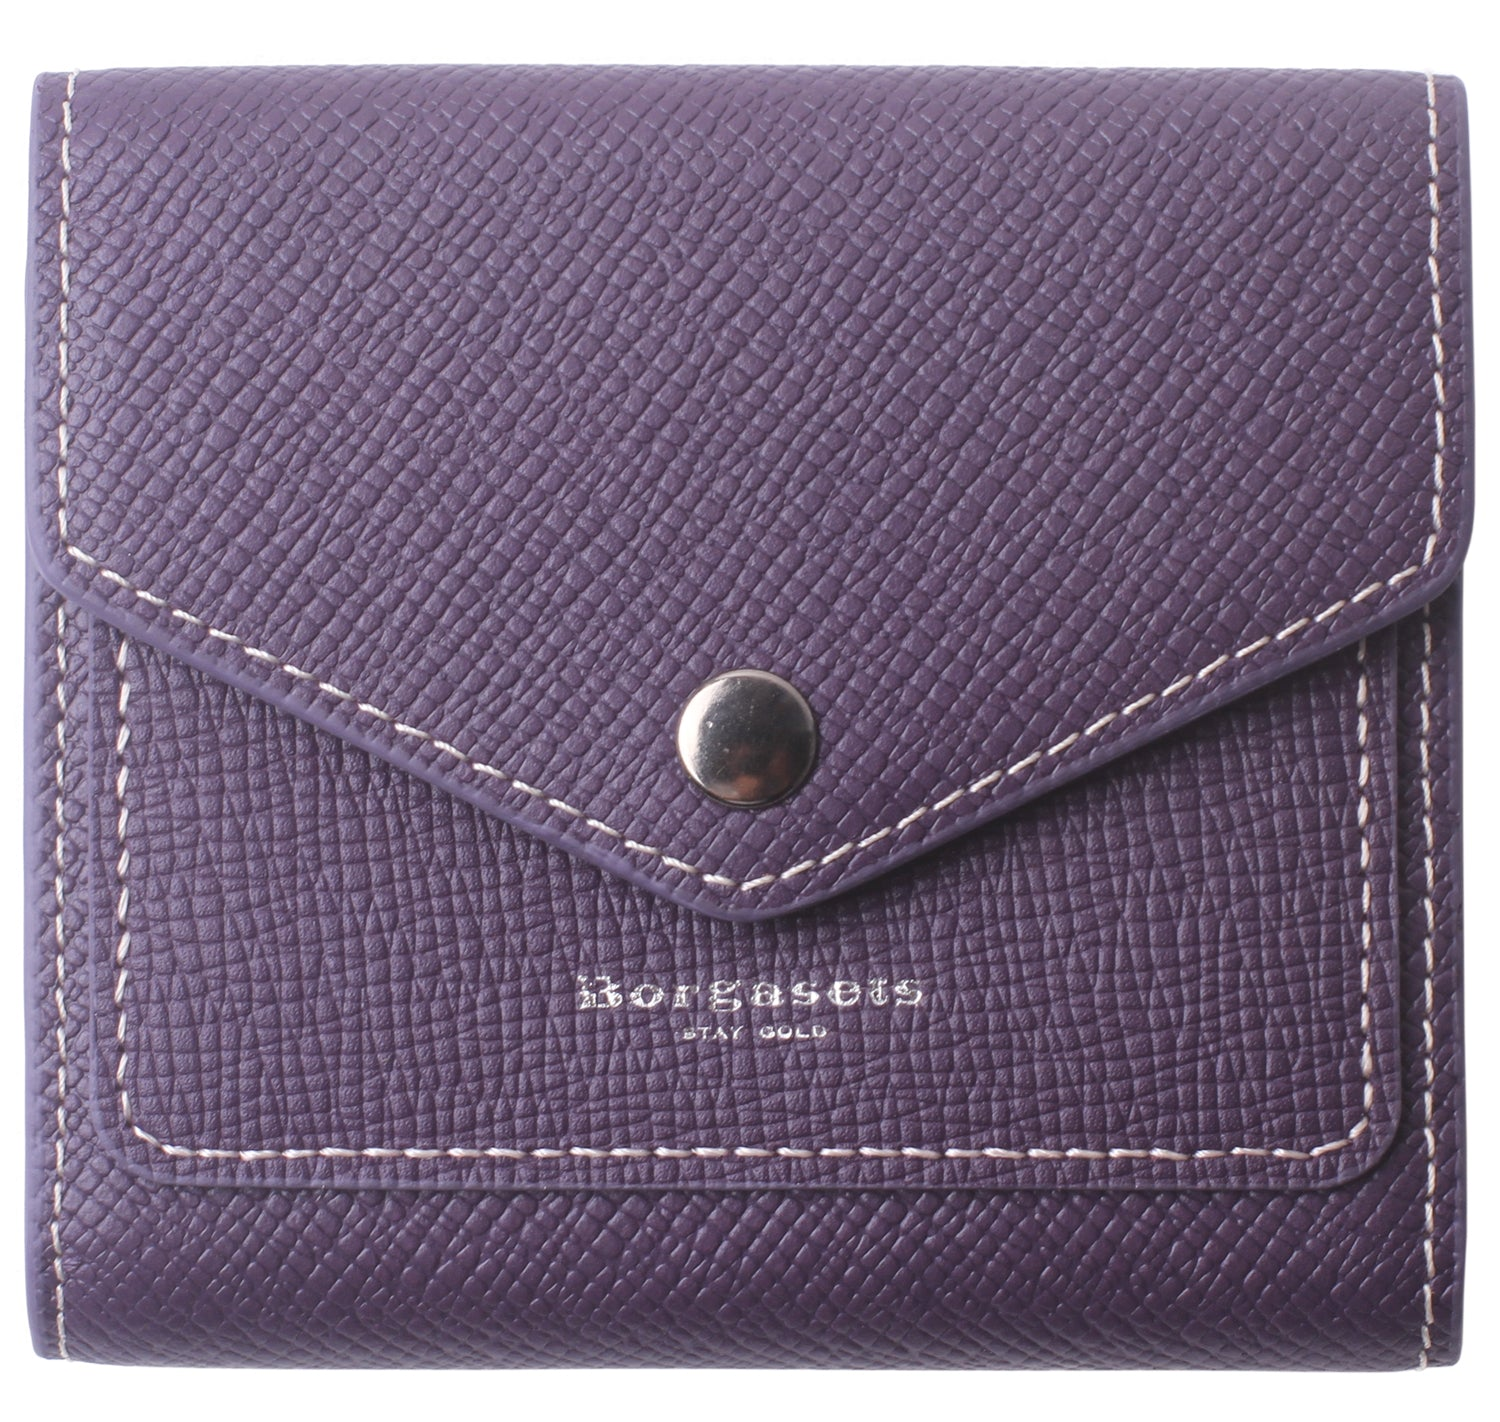 Small Leather Wallet for Women, RFID Blocking Women's Credit Card Holder Mini Bifold Pocket Purse BG1023 Crosshatch Purple - Borgasets